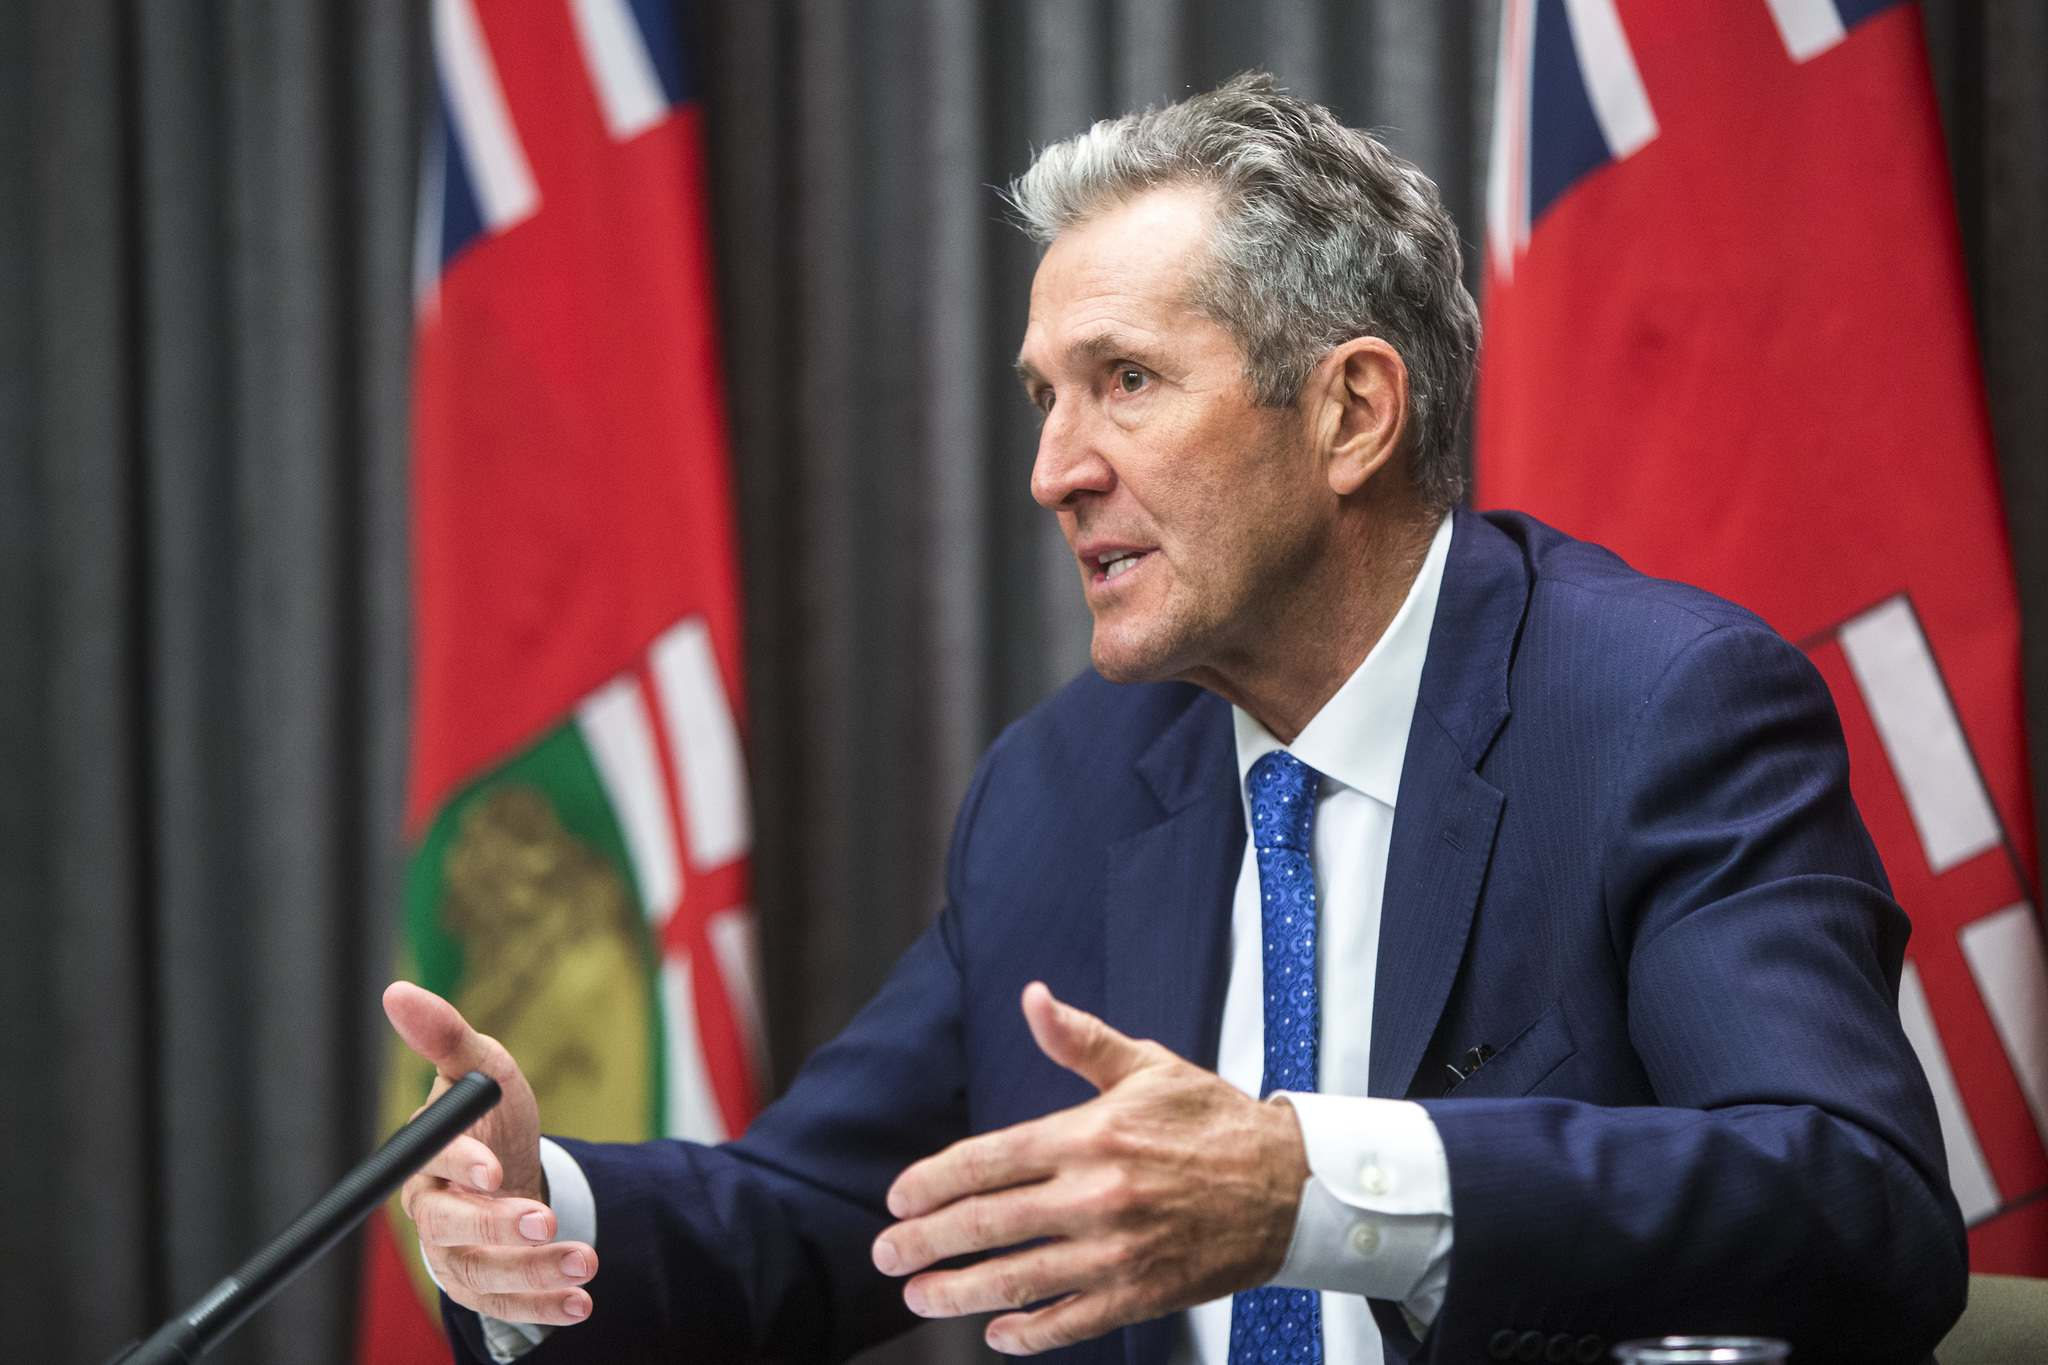 """MIKAELA MACKENZIE / FREE PRESS FILES</p><p>The letter, which was sent to Premier Brian Pallister, is signed by more than 200 physicians and academics who share a """"unanimous alarm regarding the COVID-19 crisis in Manitoba.""""</p>"""